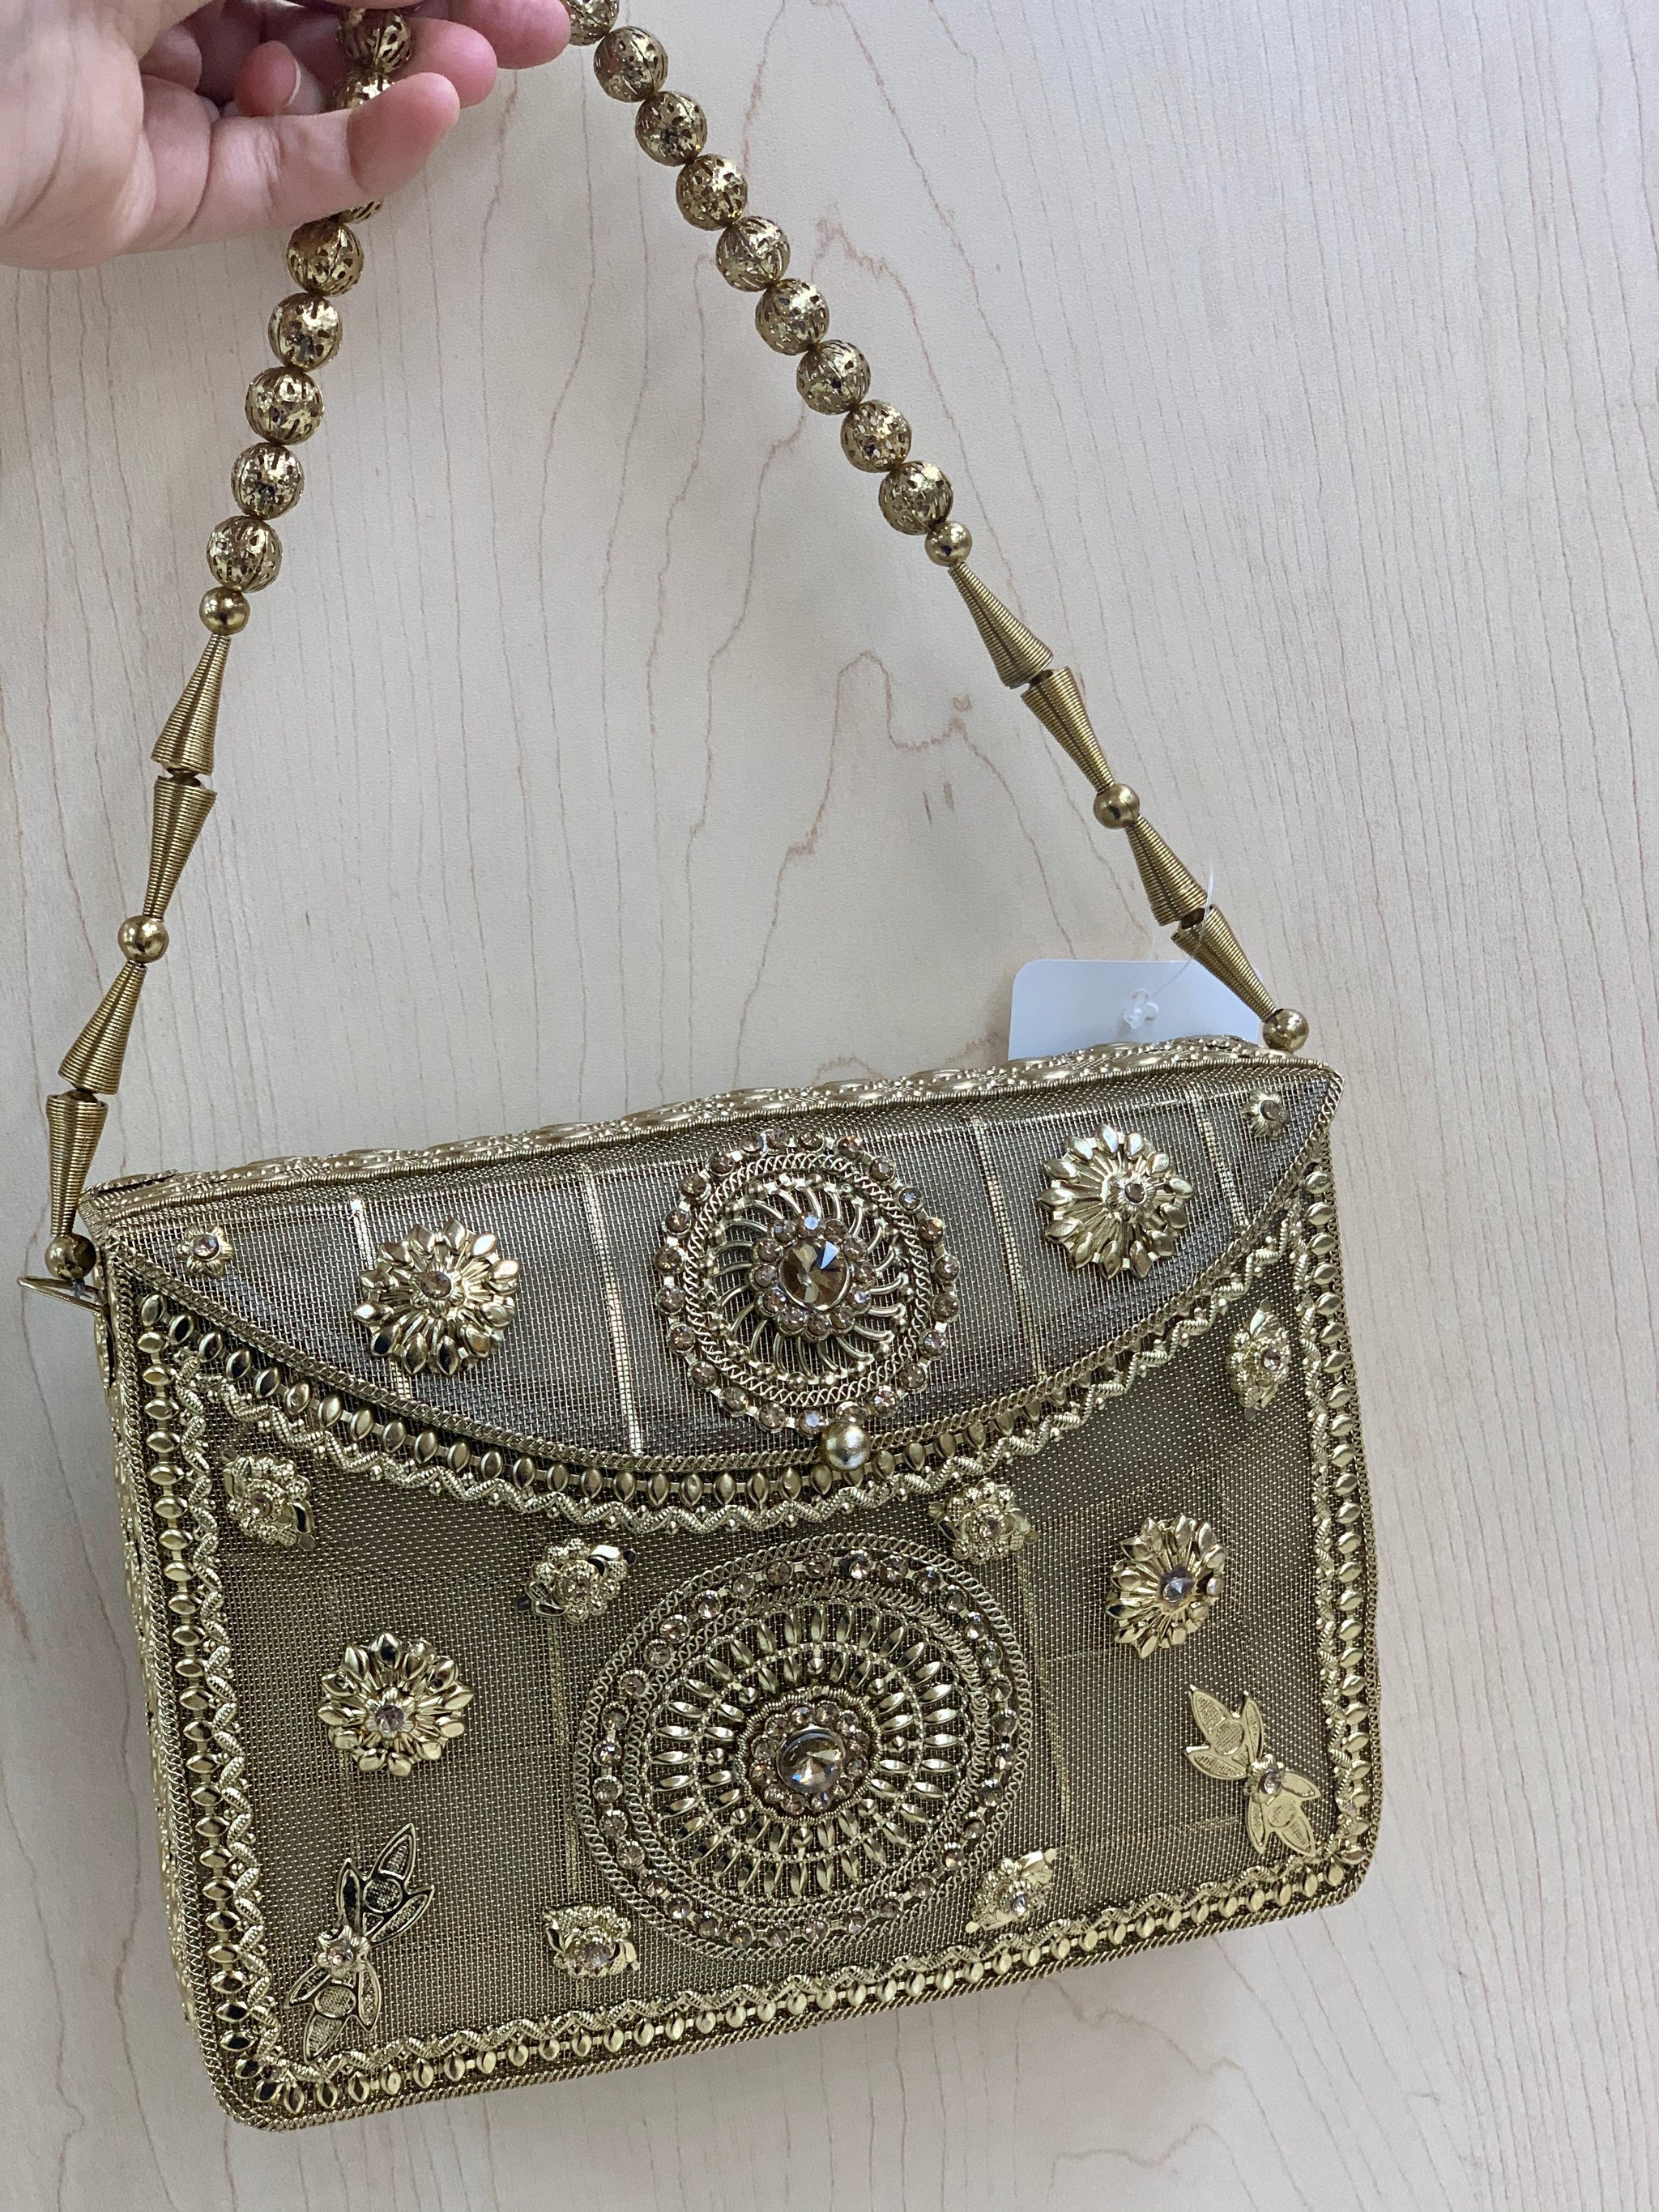 Antique Golden Metal Purse D7